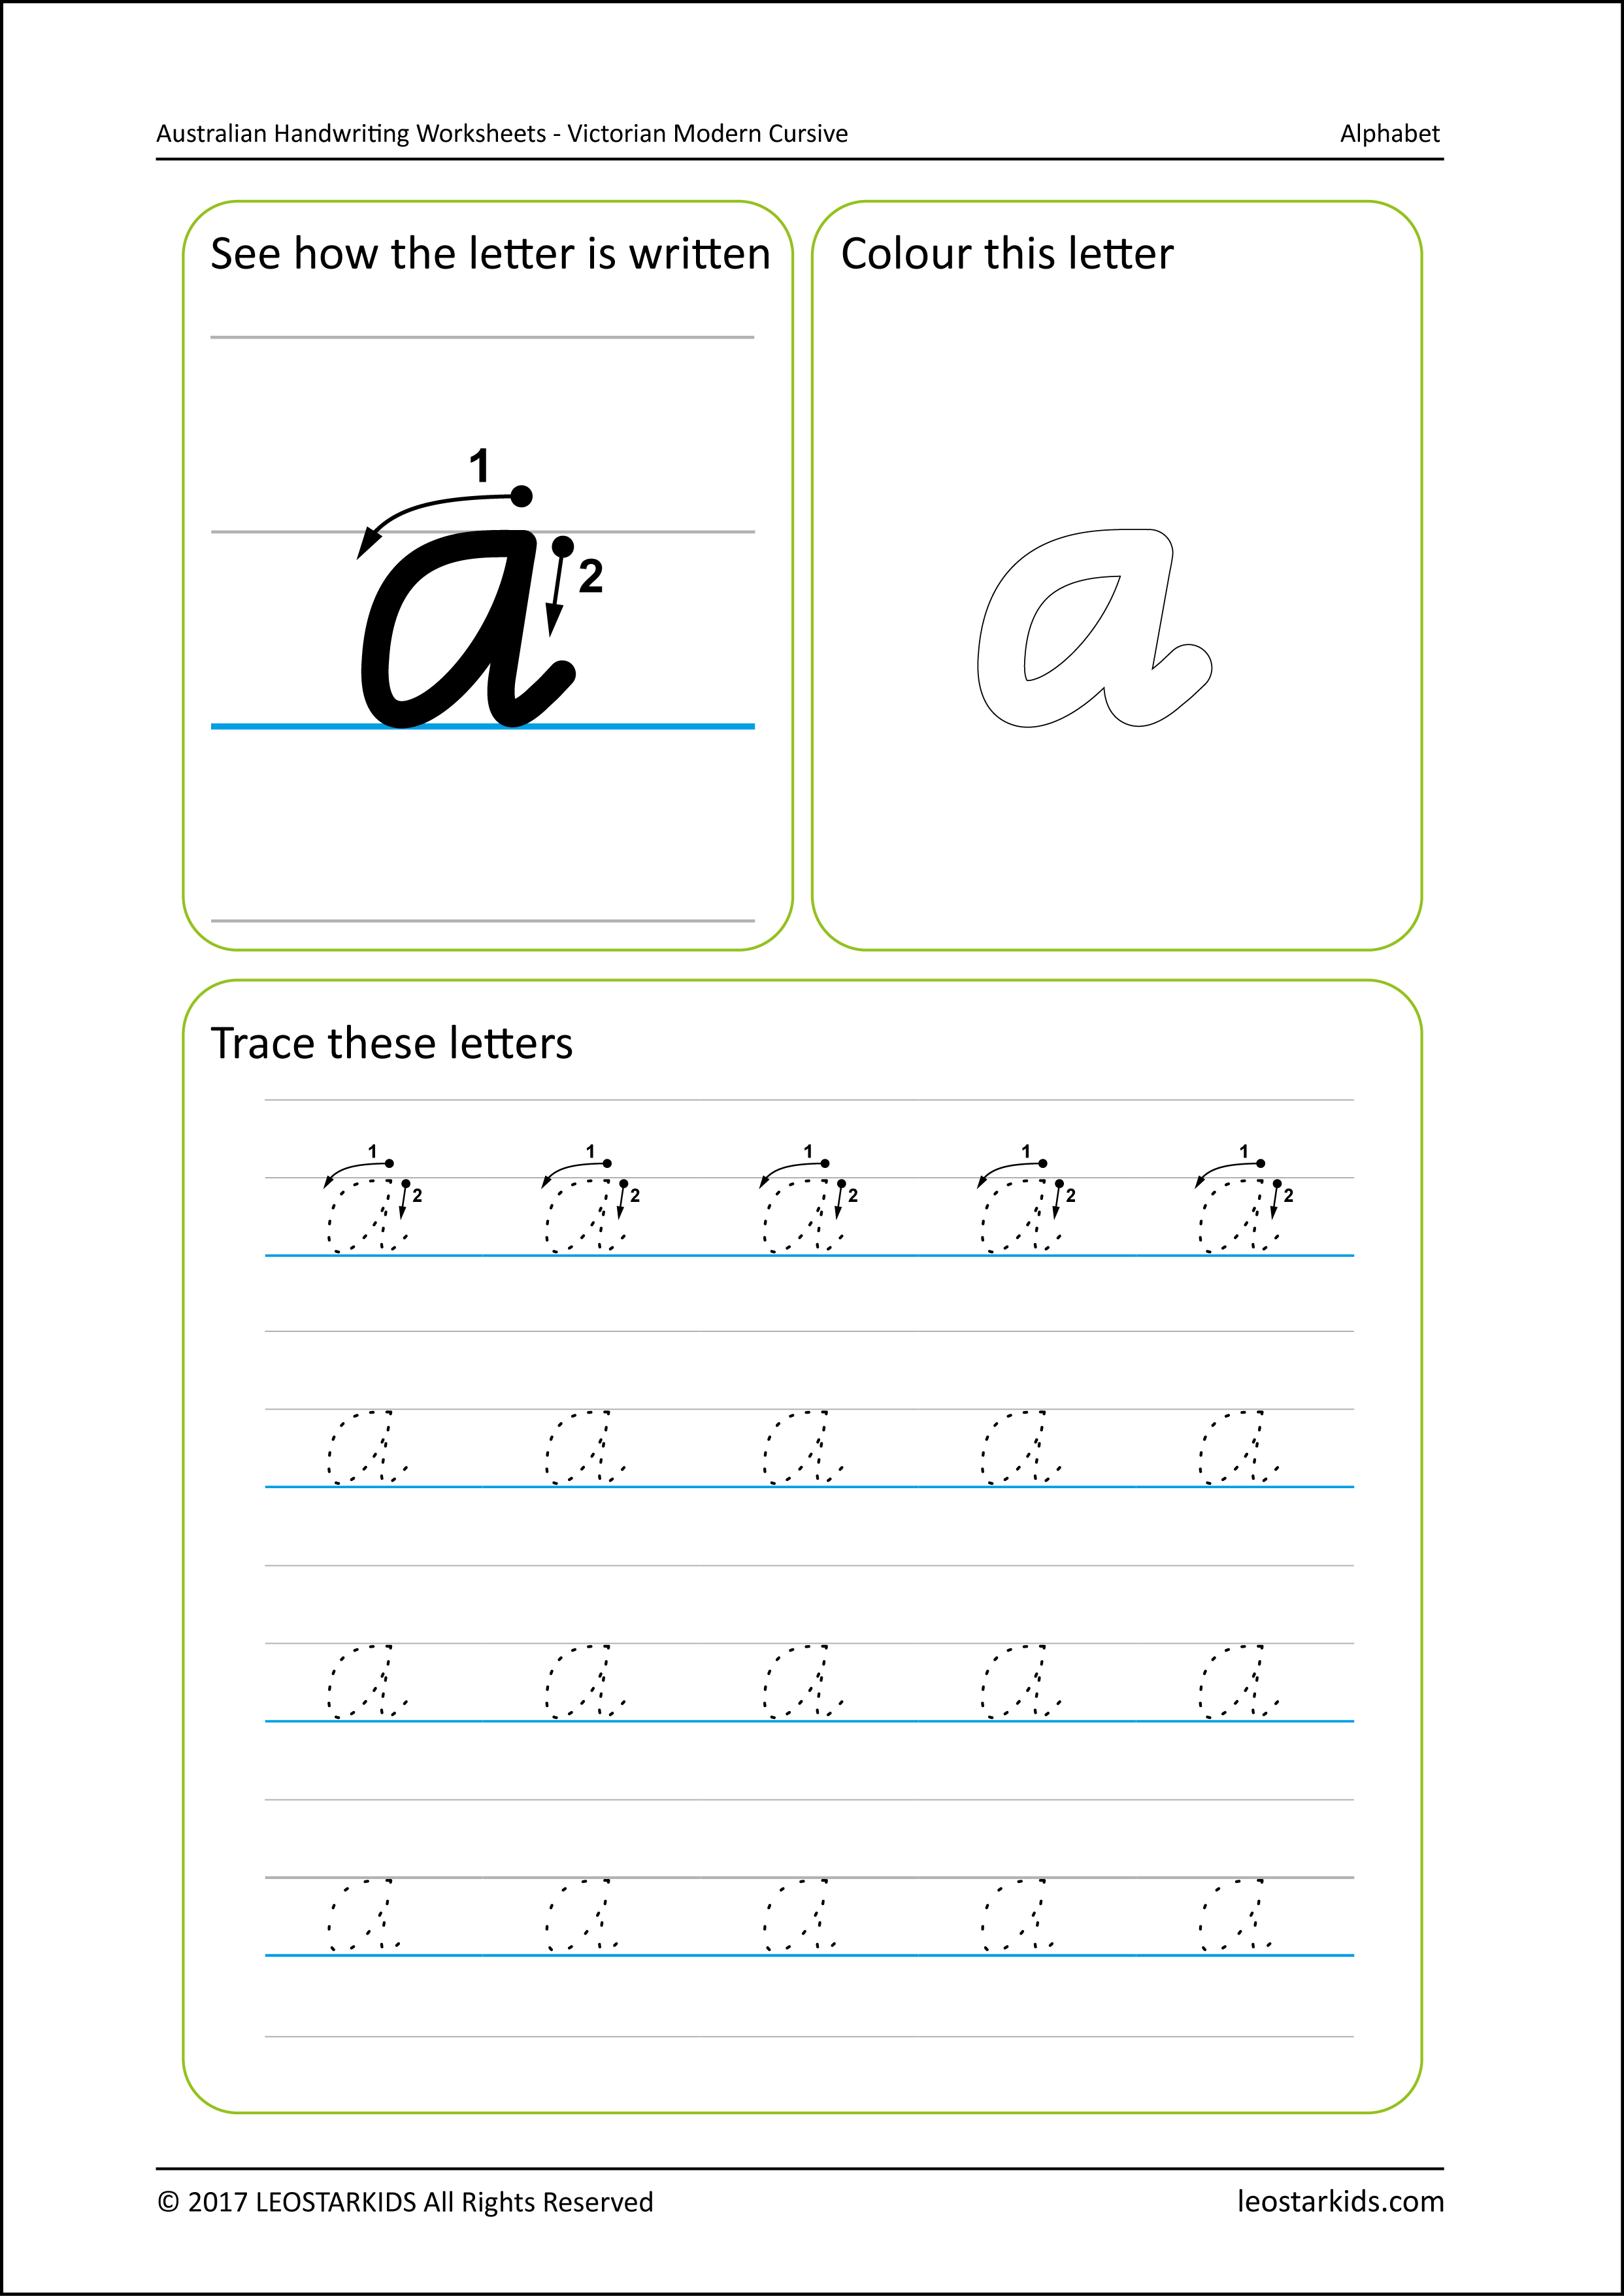 Australian Handwriting Worksheets - Victorian Modern Cursive in Name Tracing Victorian Cursive